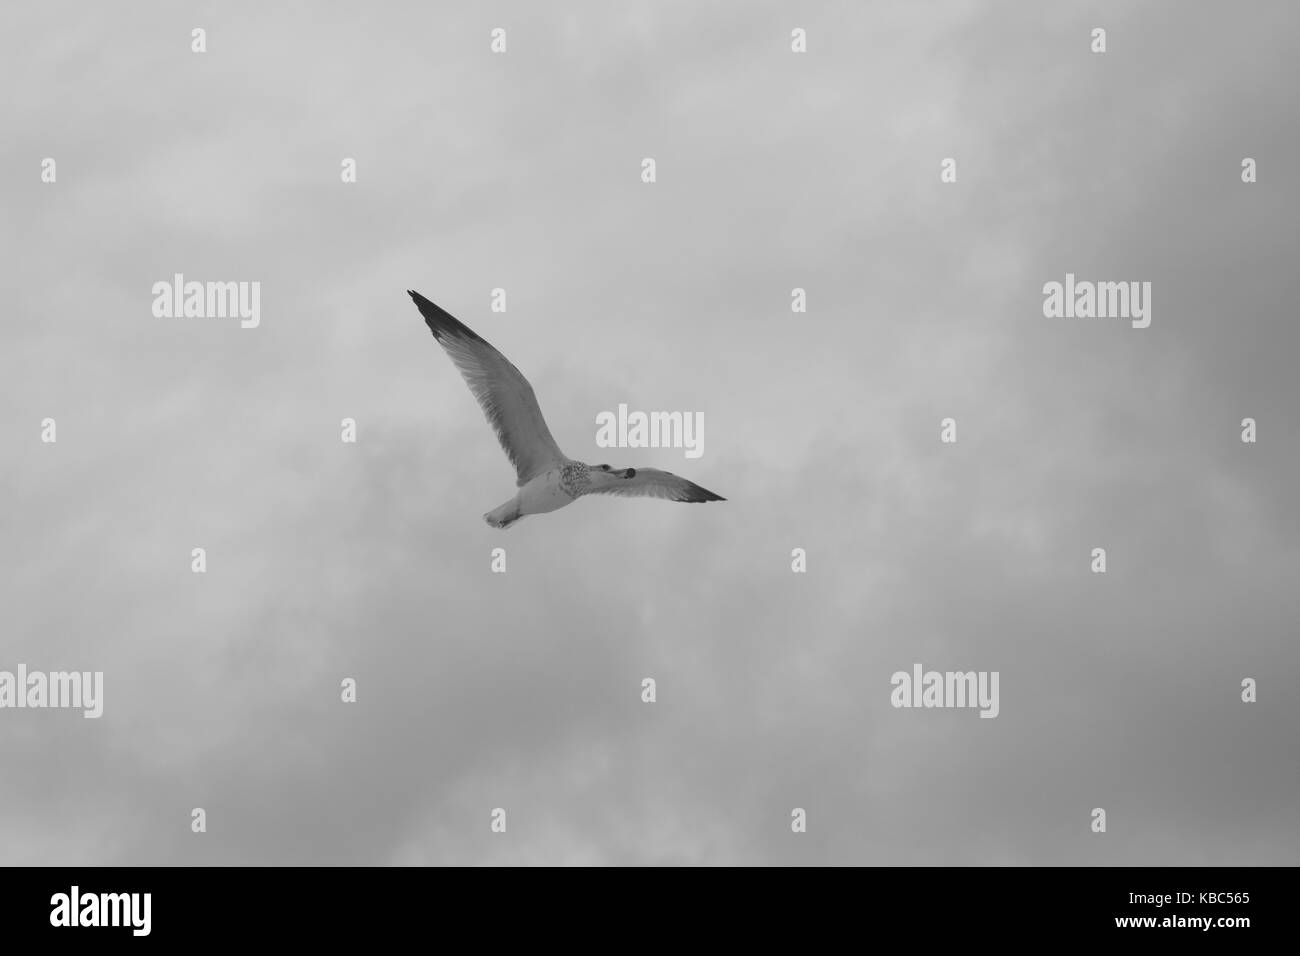 Soaring through the cloudy skies - Stock Image